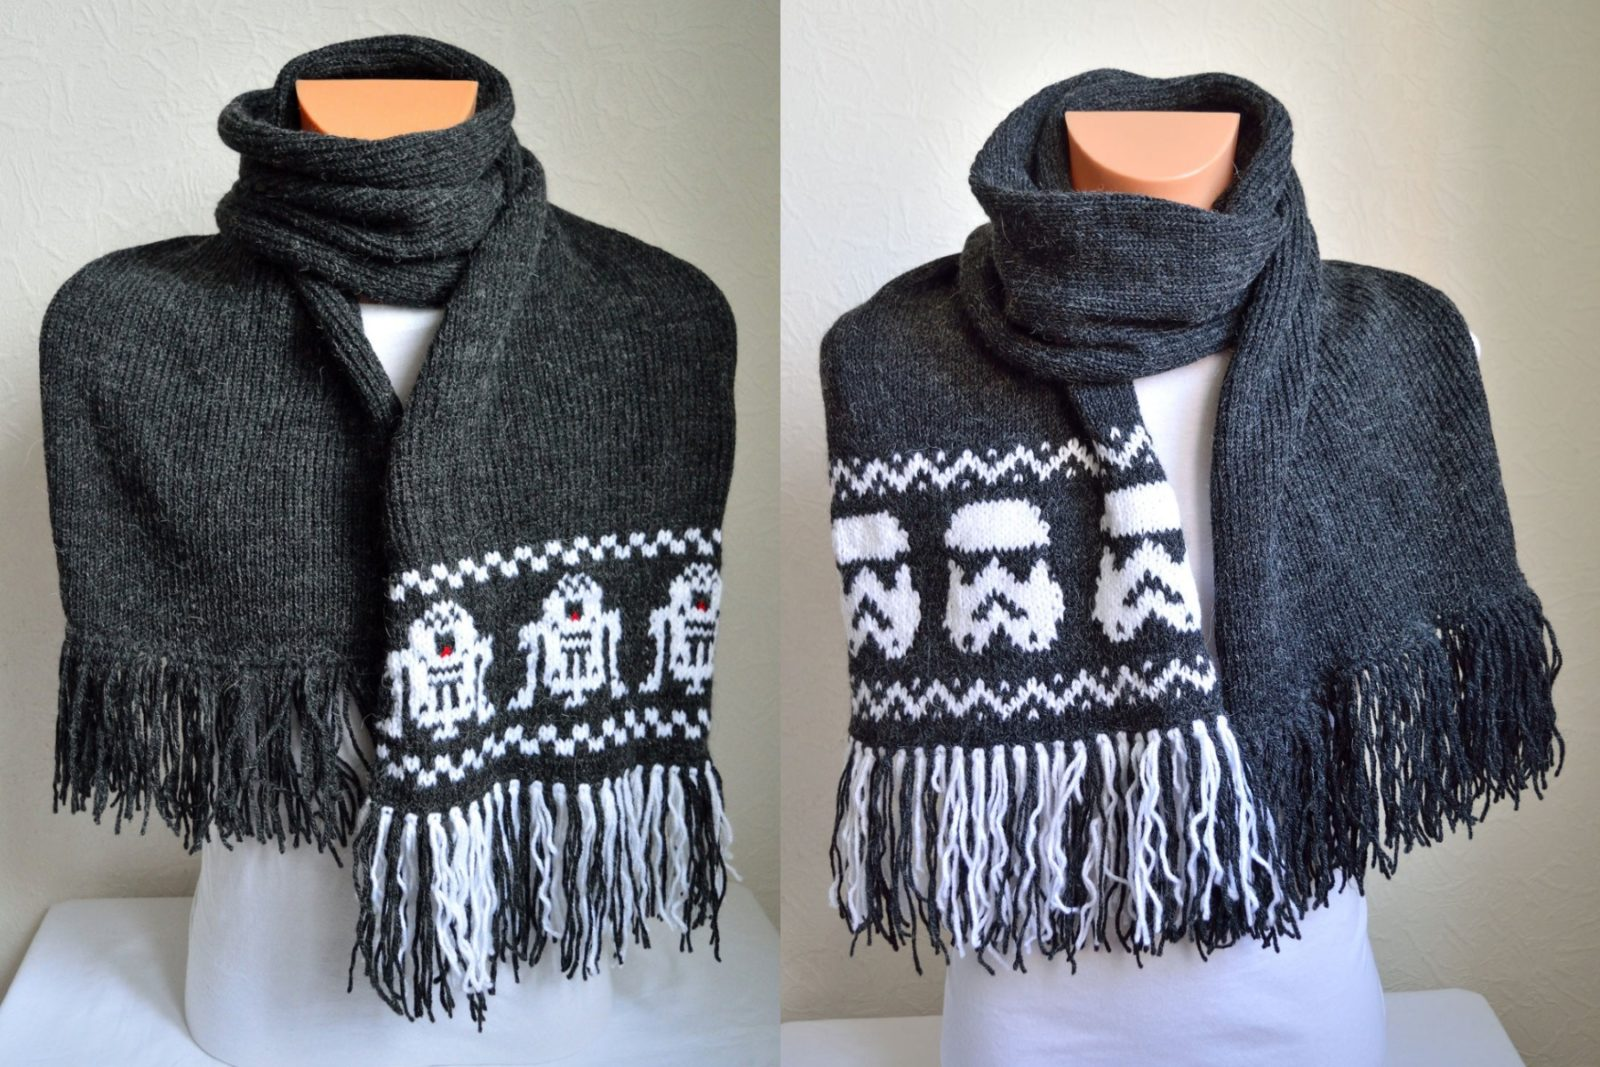 Star Wars Knitted Scarves by VidaKnitWorks